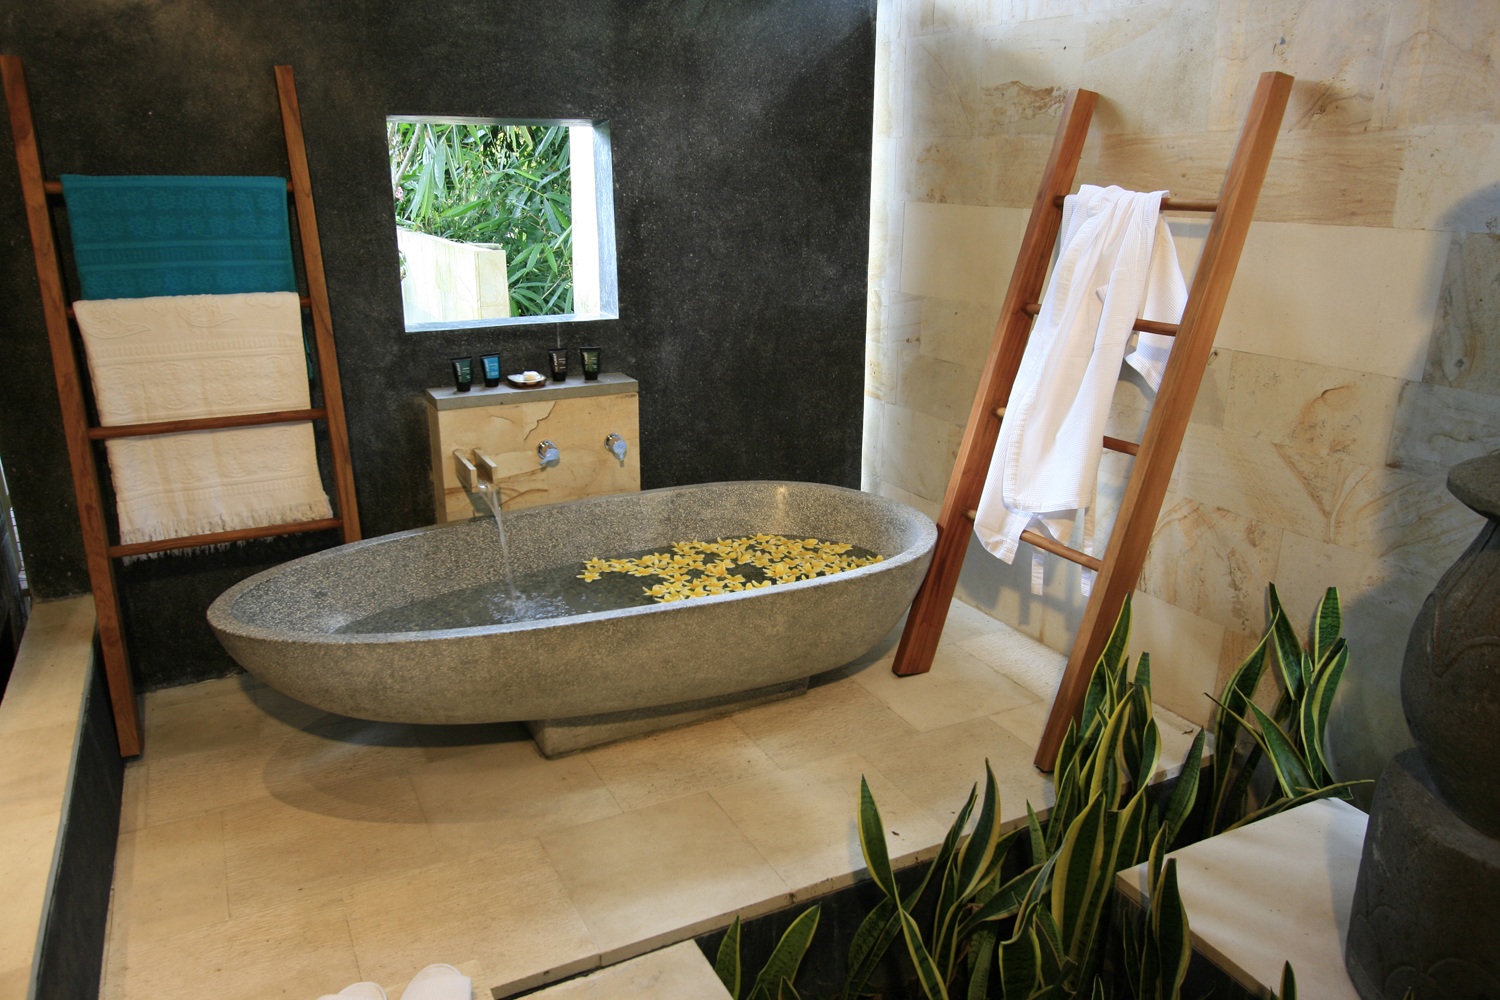 Bathroom Sinks Houston stone bathroom vanities, stone sinks houston tx - arka living